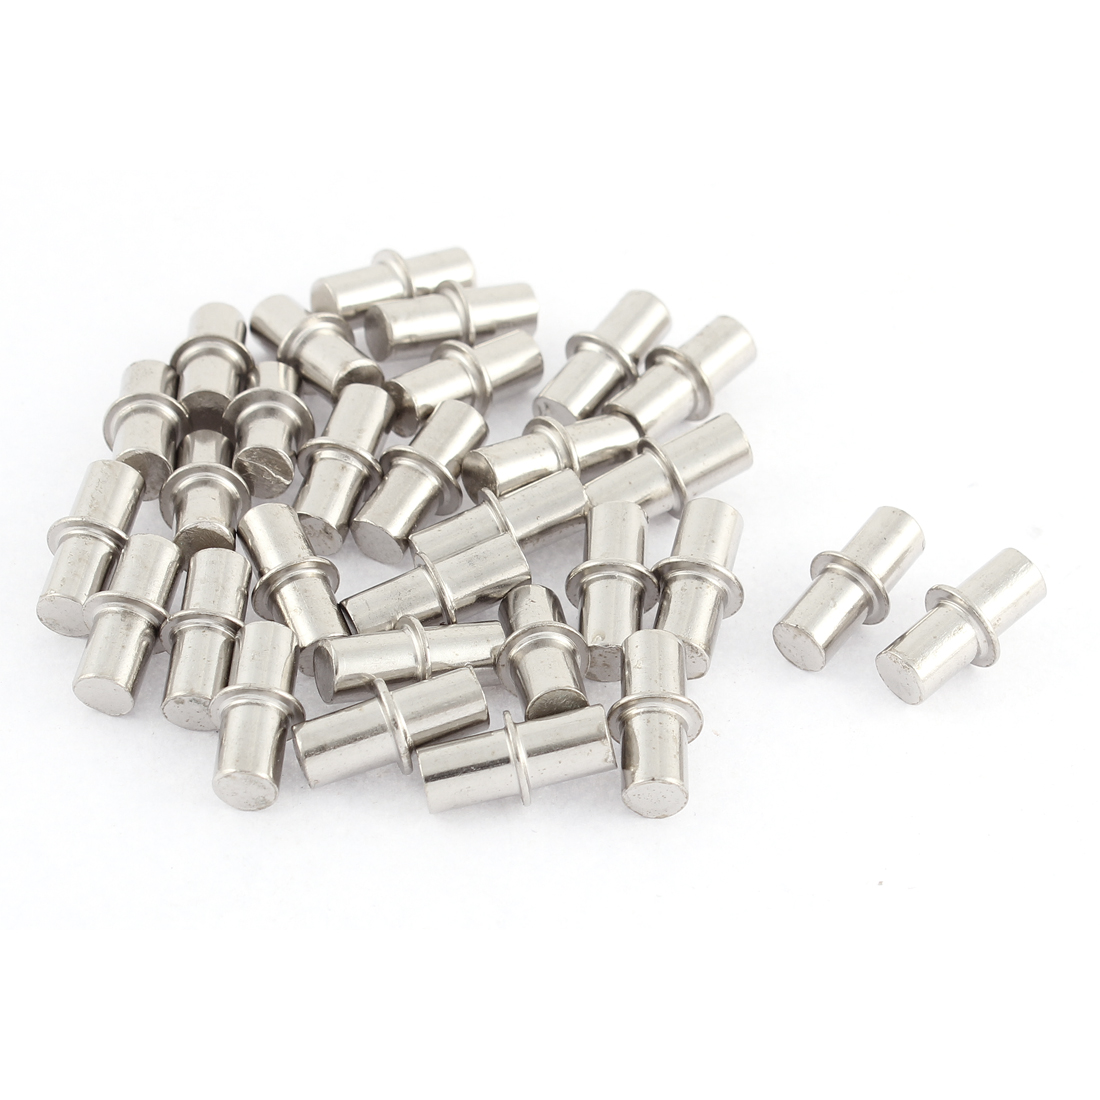 6mm x 17mm Furniture Cupboard Hardware Metal Shelf Support Pins 30 Pcs